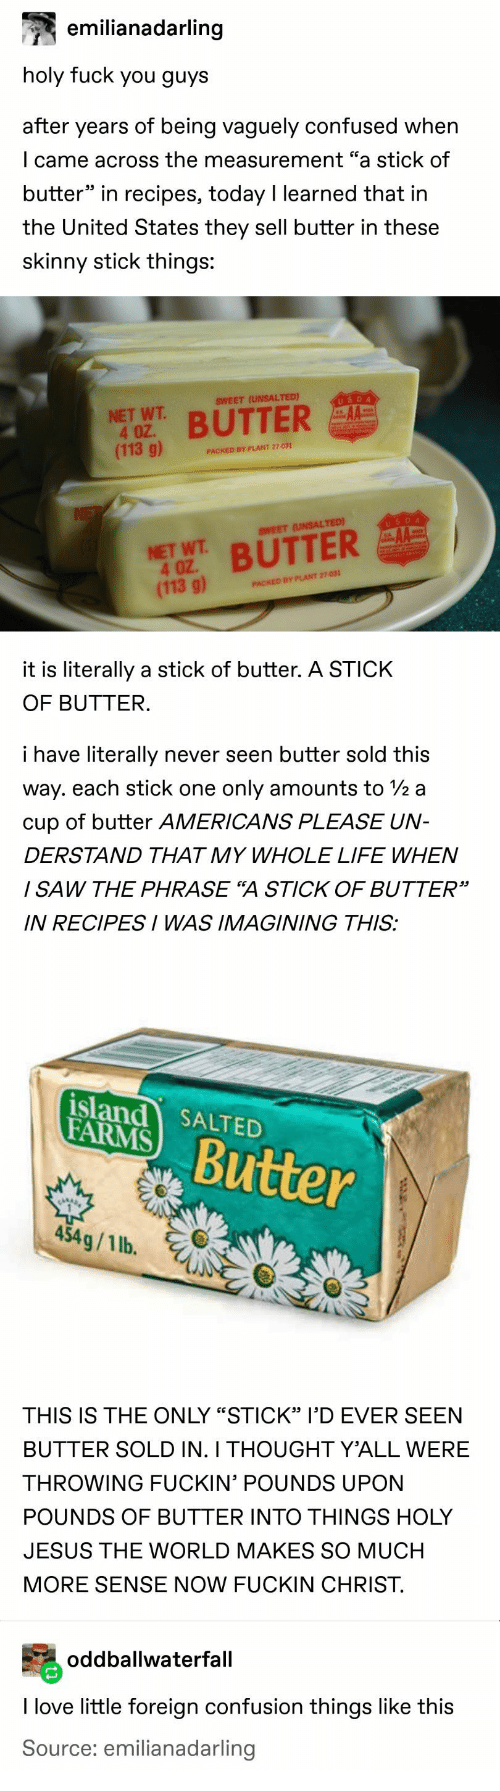 """Confused, Fuck You, and Jesus: emilianadarling  holy fuck you guys  after years of being vaguely confused when  I came across the measurement """"a stick of  butter"""" in recipes, today I learned that in  the United States they sell butter in these  skinny stick things:  USDA  SWEET (UNSALTED)  NET WT  4 OZ.  (113 g)  BUTTER  PACKED BY PLANT 27-031  NE  USDA  AA  SWEET (UNSALTED)  NET WT BUTTER  4 OZ  (113 g)  PACKED BY PLANT 27-031  it is literally a stick of butter. A STICK  OF BUTTER.  i have literally  never seen butter sold this  way. each stick one  only amounts to 2 a  cup of butter AMERICANS PLEASE UN-  DERSTAND THAT MY WHOLE LIFE WHEN  I SAW THE PHRASE """"A STICK OF BUTTER""""  IN RECIPESI WAS IMAGINING THIS:  island SALTED  FARMS  Butter  454g/1 lb.  THIS IS THE ONLY """"STICK"""" I'D EVER SEEN  BUTTER SOLD IN. I THOUGHT Y'ALL WERE  THROWING FUCKIN' POUNDS UPON  POUNDS OF BUTTER INTO THINGS HOLY  JESUS THE WORLD MAKES SO MUCH  MORE SENSE NOW FUCKIN CHRIST  oddballwaterfall  I love little foreign confusion things like this  Source: emilianadarling"""